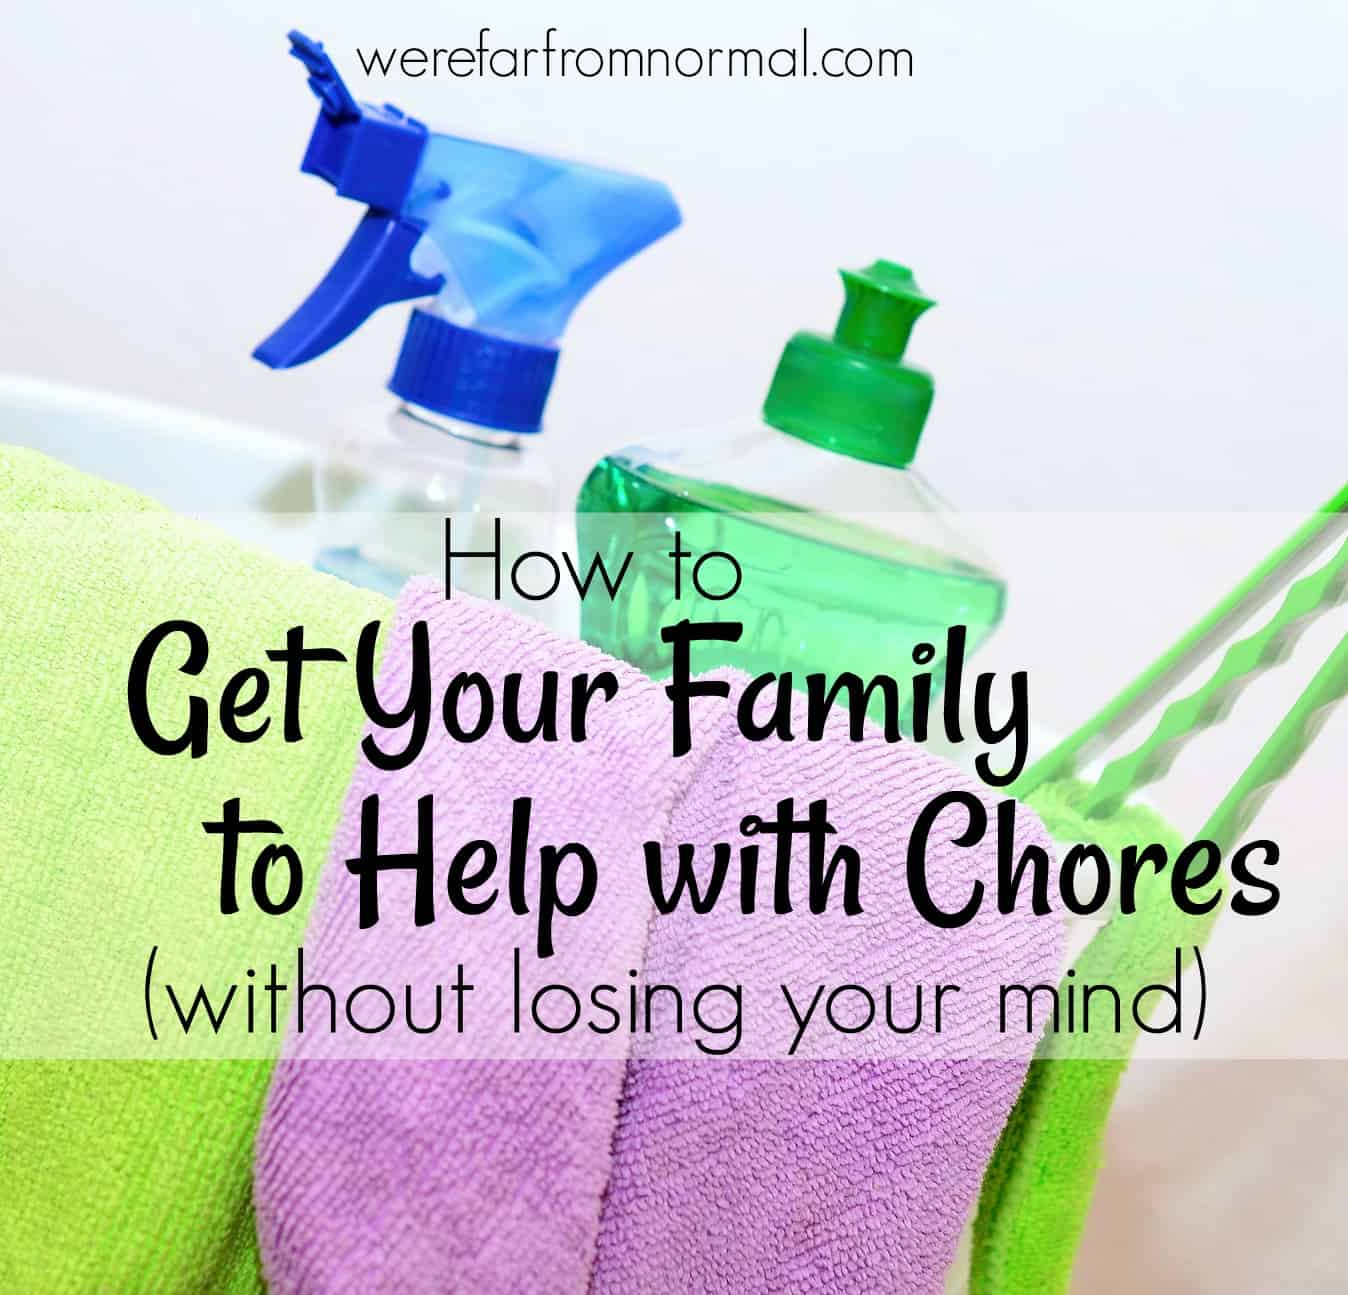 How to Get Your Family to Help With Chores (Without losing your mind!)